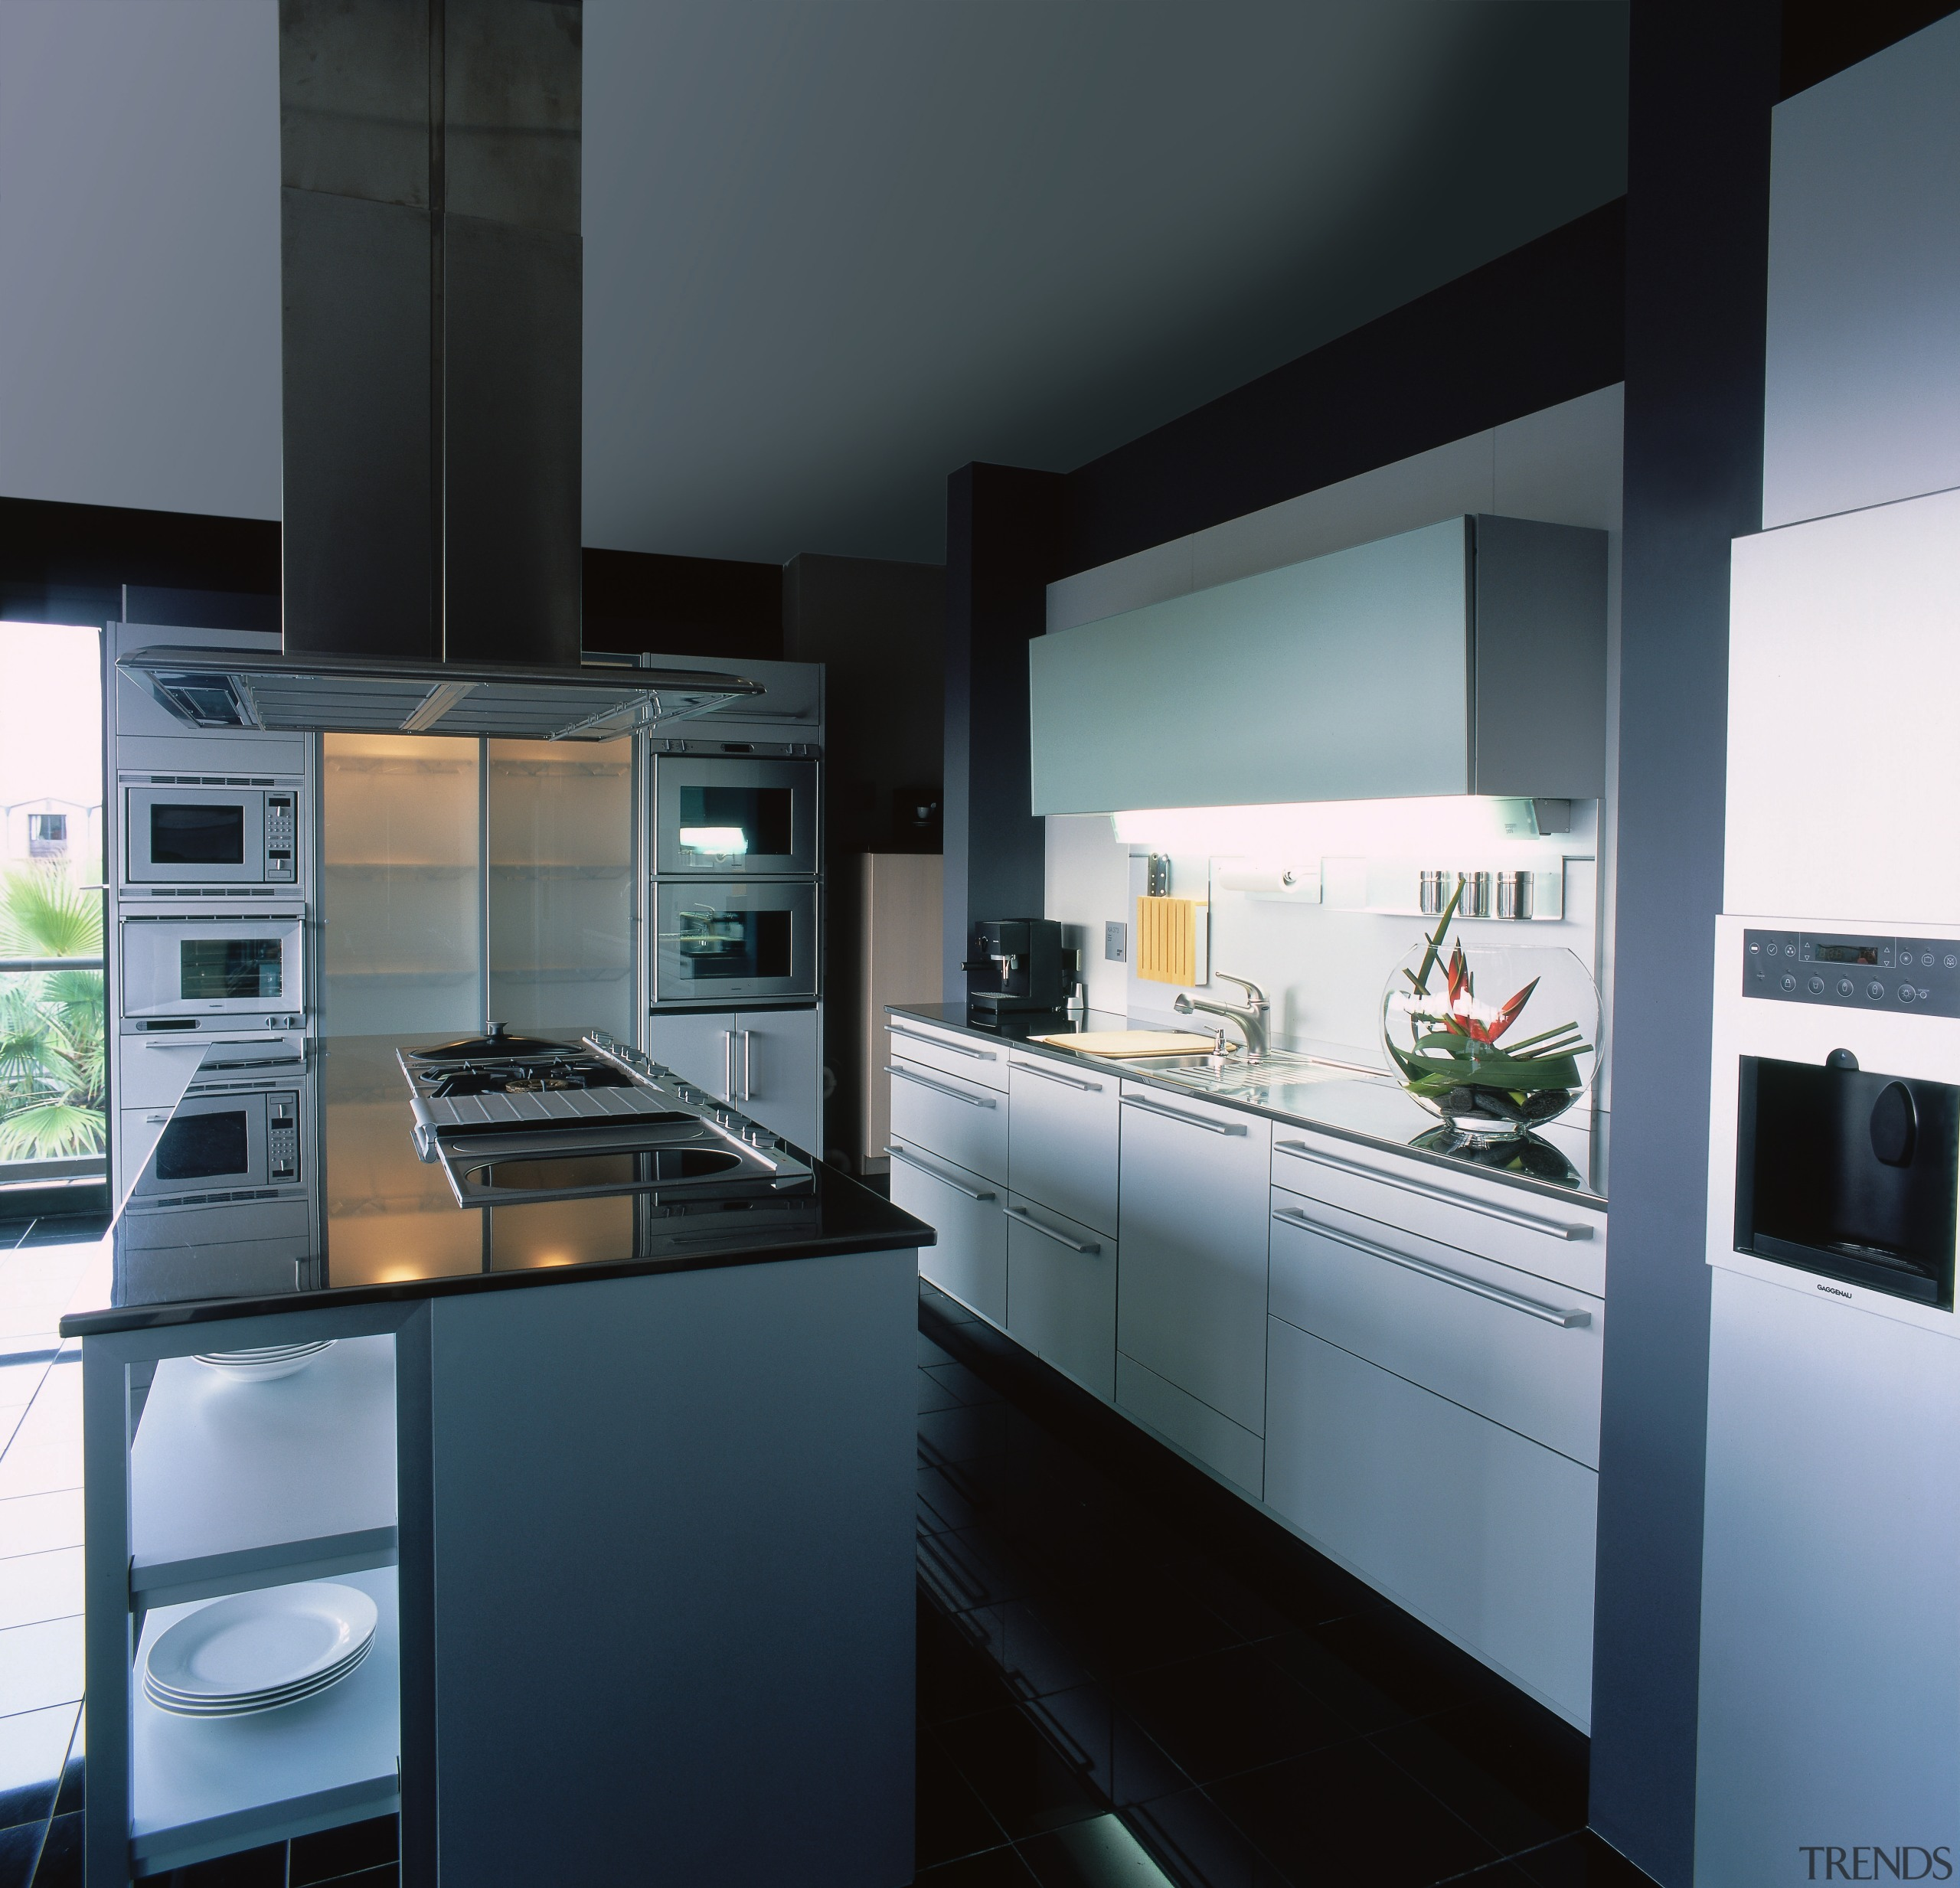 View of this contemporary kitchen - View of countertop, cuisine classique, home appliance, interior design, kitchen, kitchen appliance, black, gray